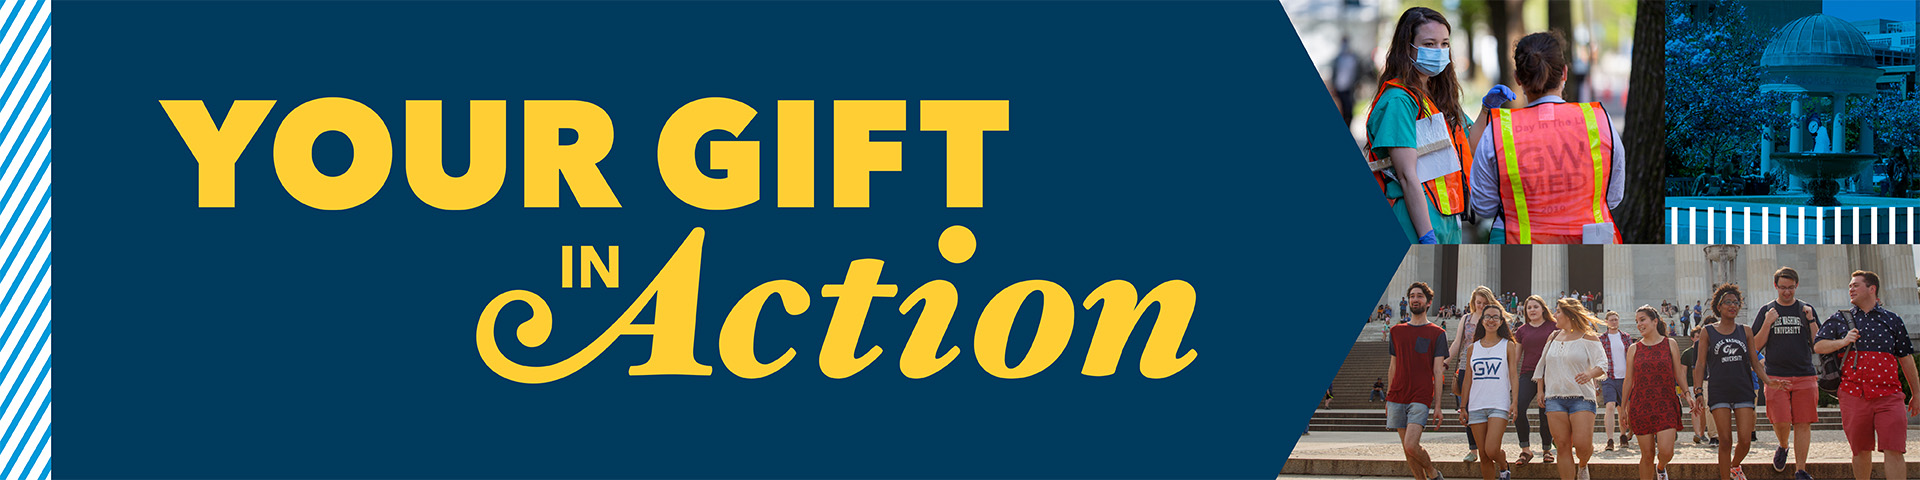 Your Gift in Action